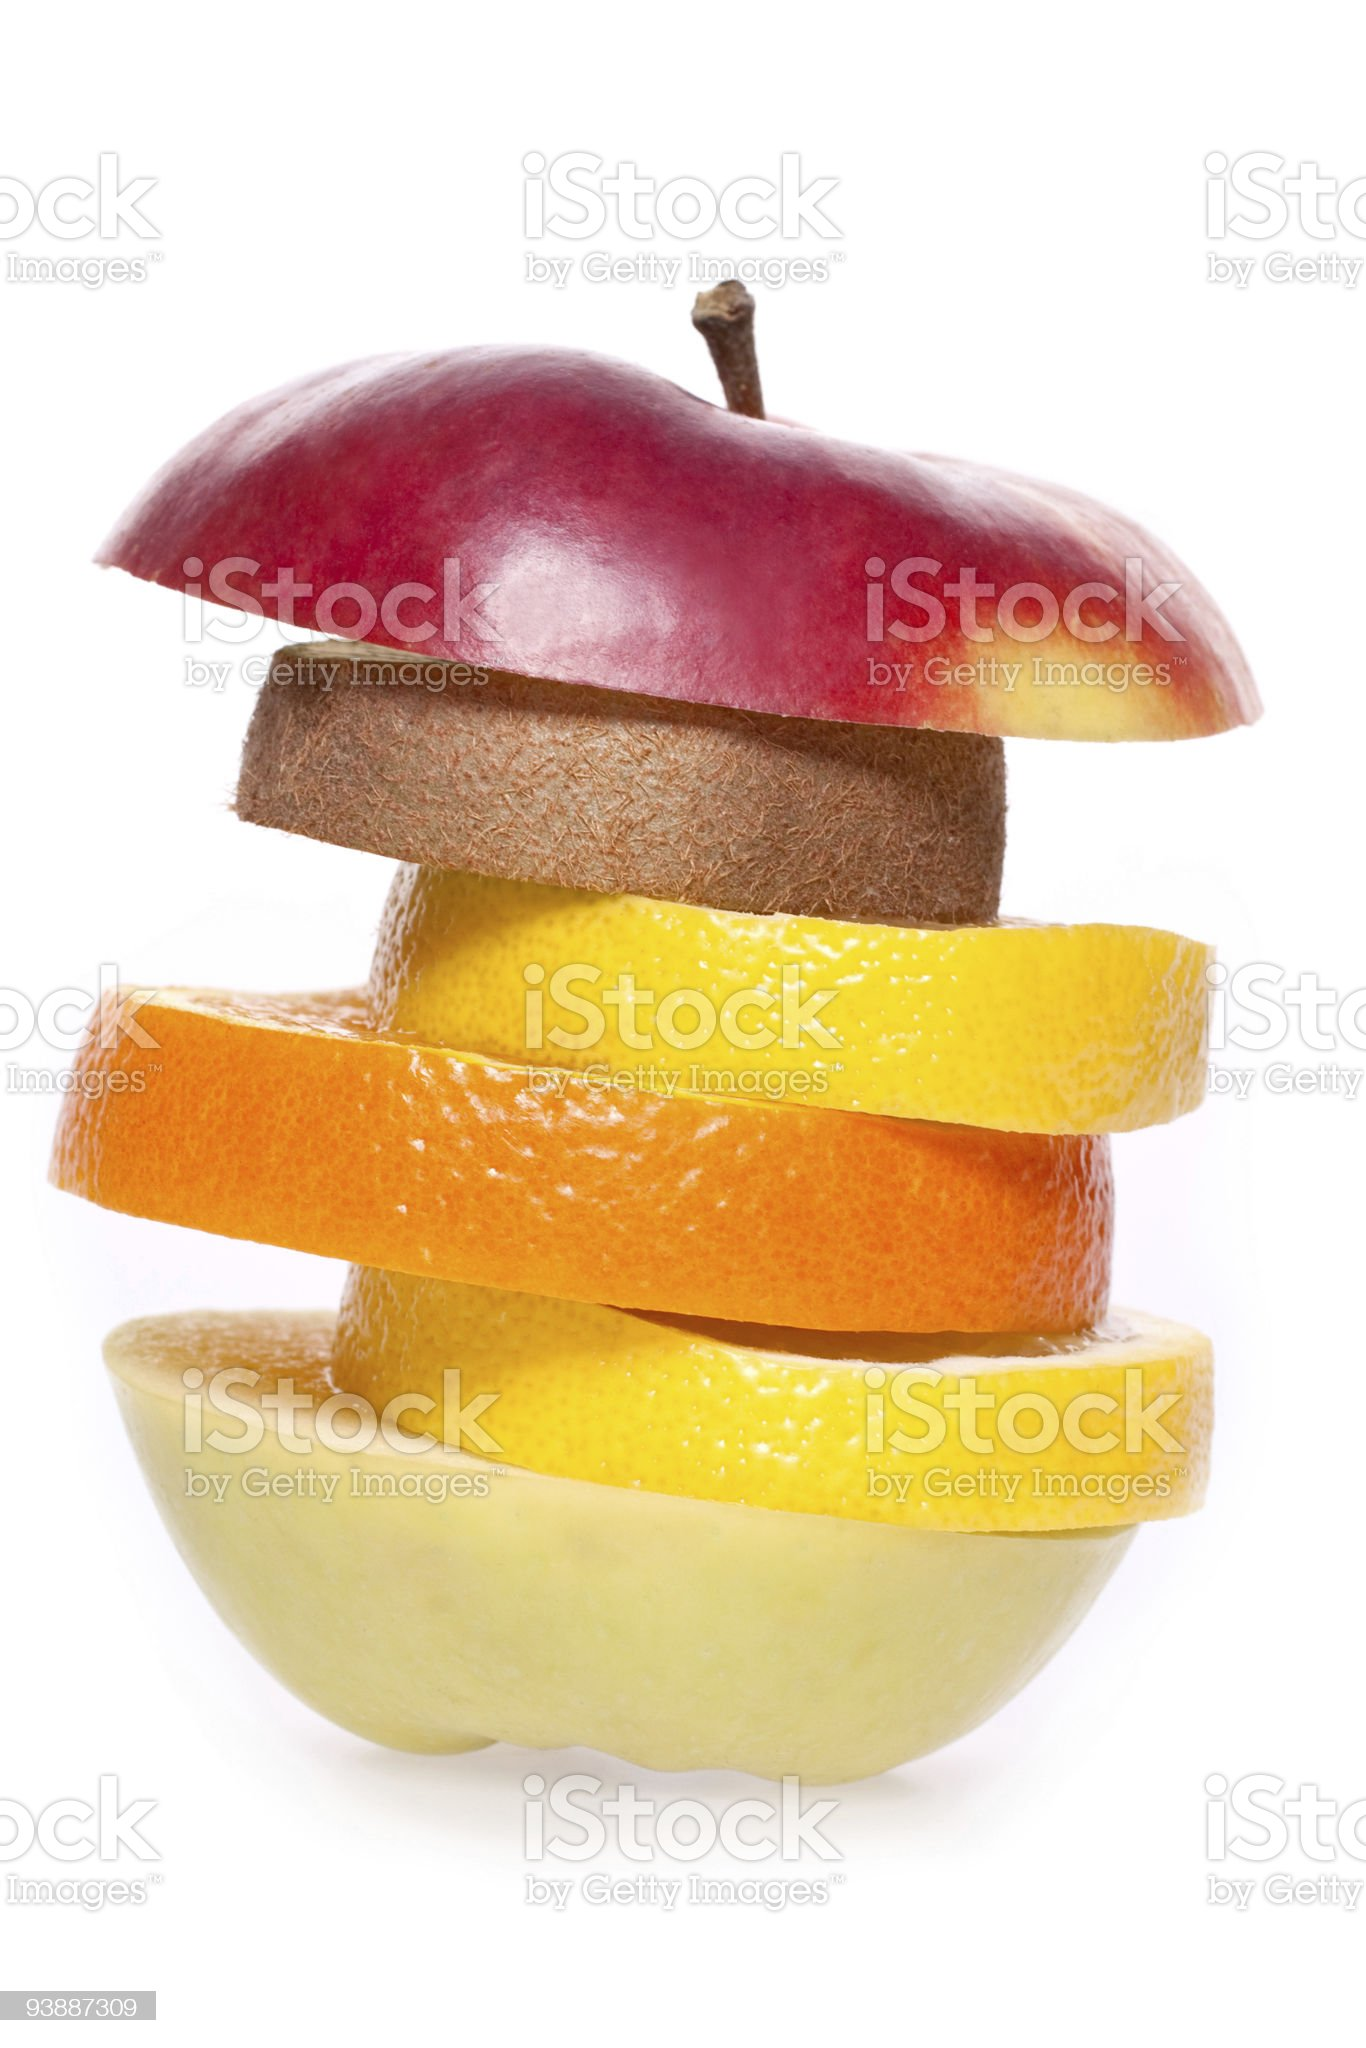 assorted fruit royalty-free stock photo